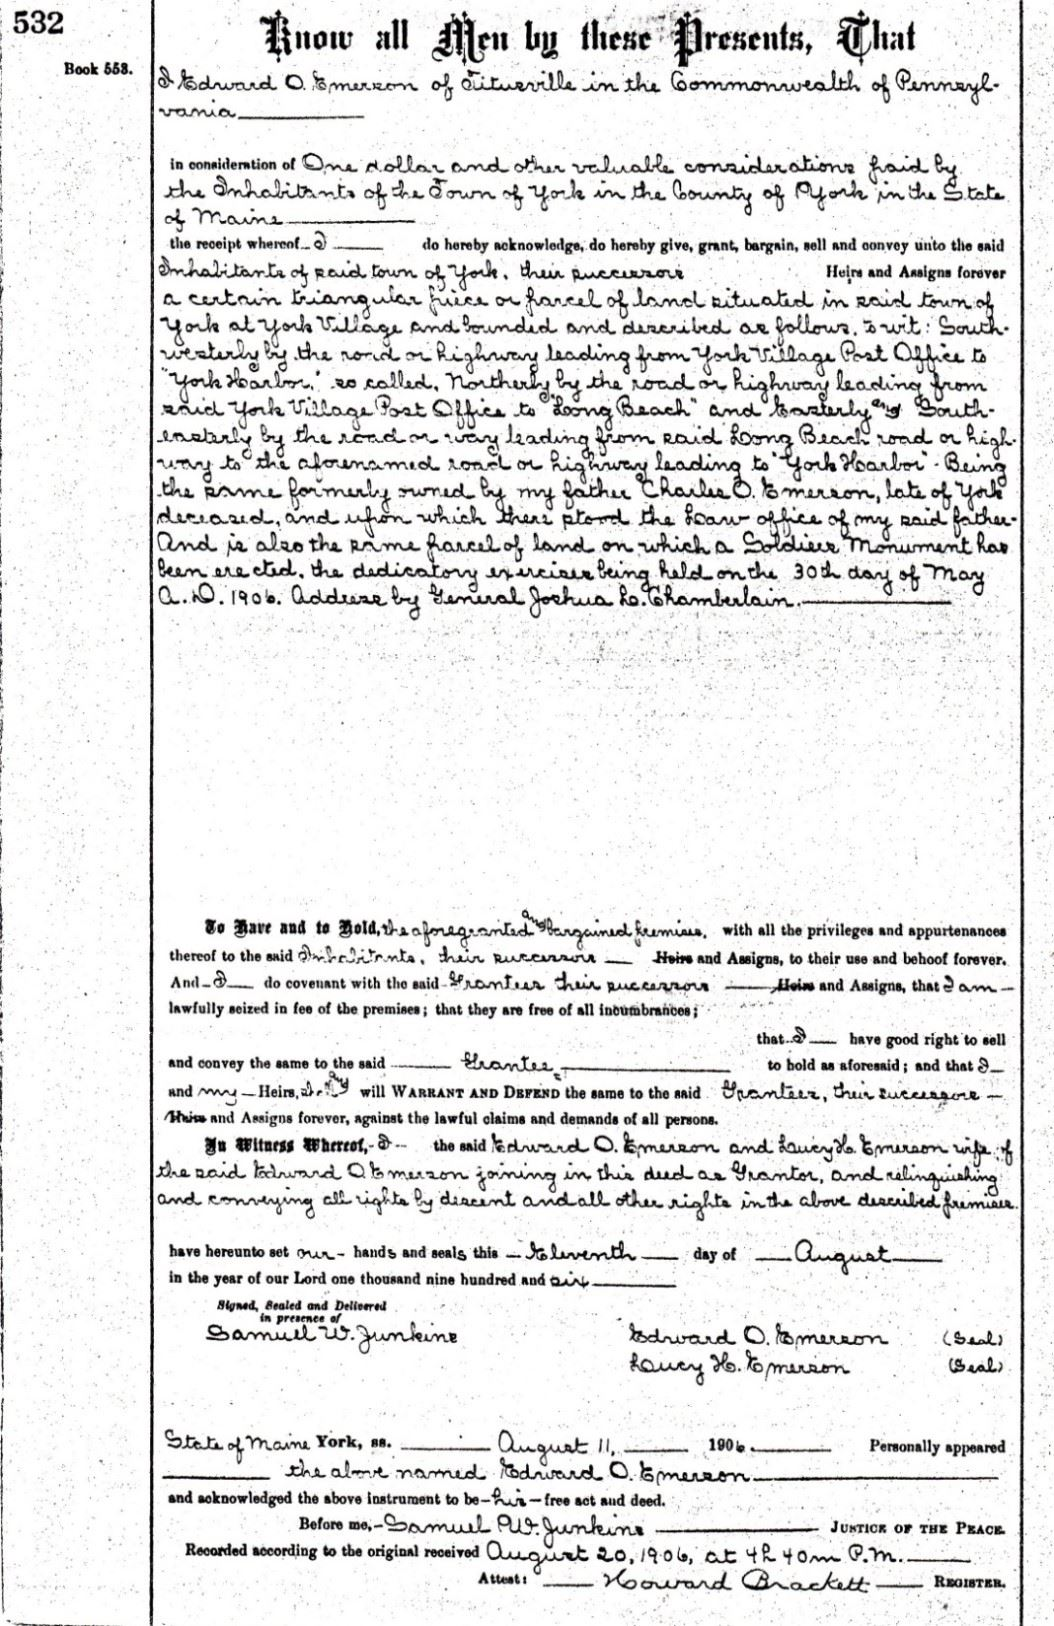 Soldiers' Memorial Property Deed